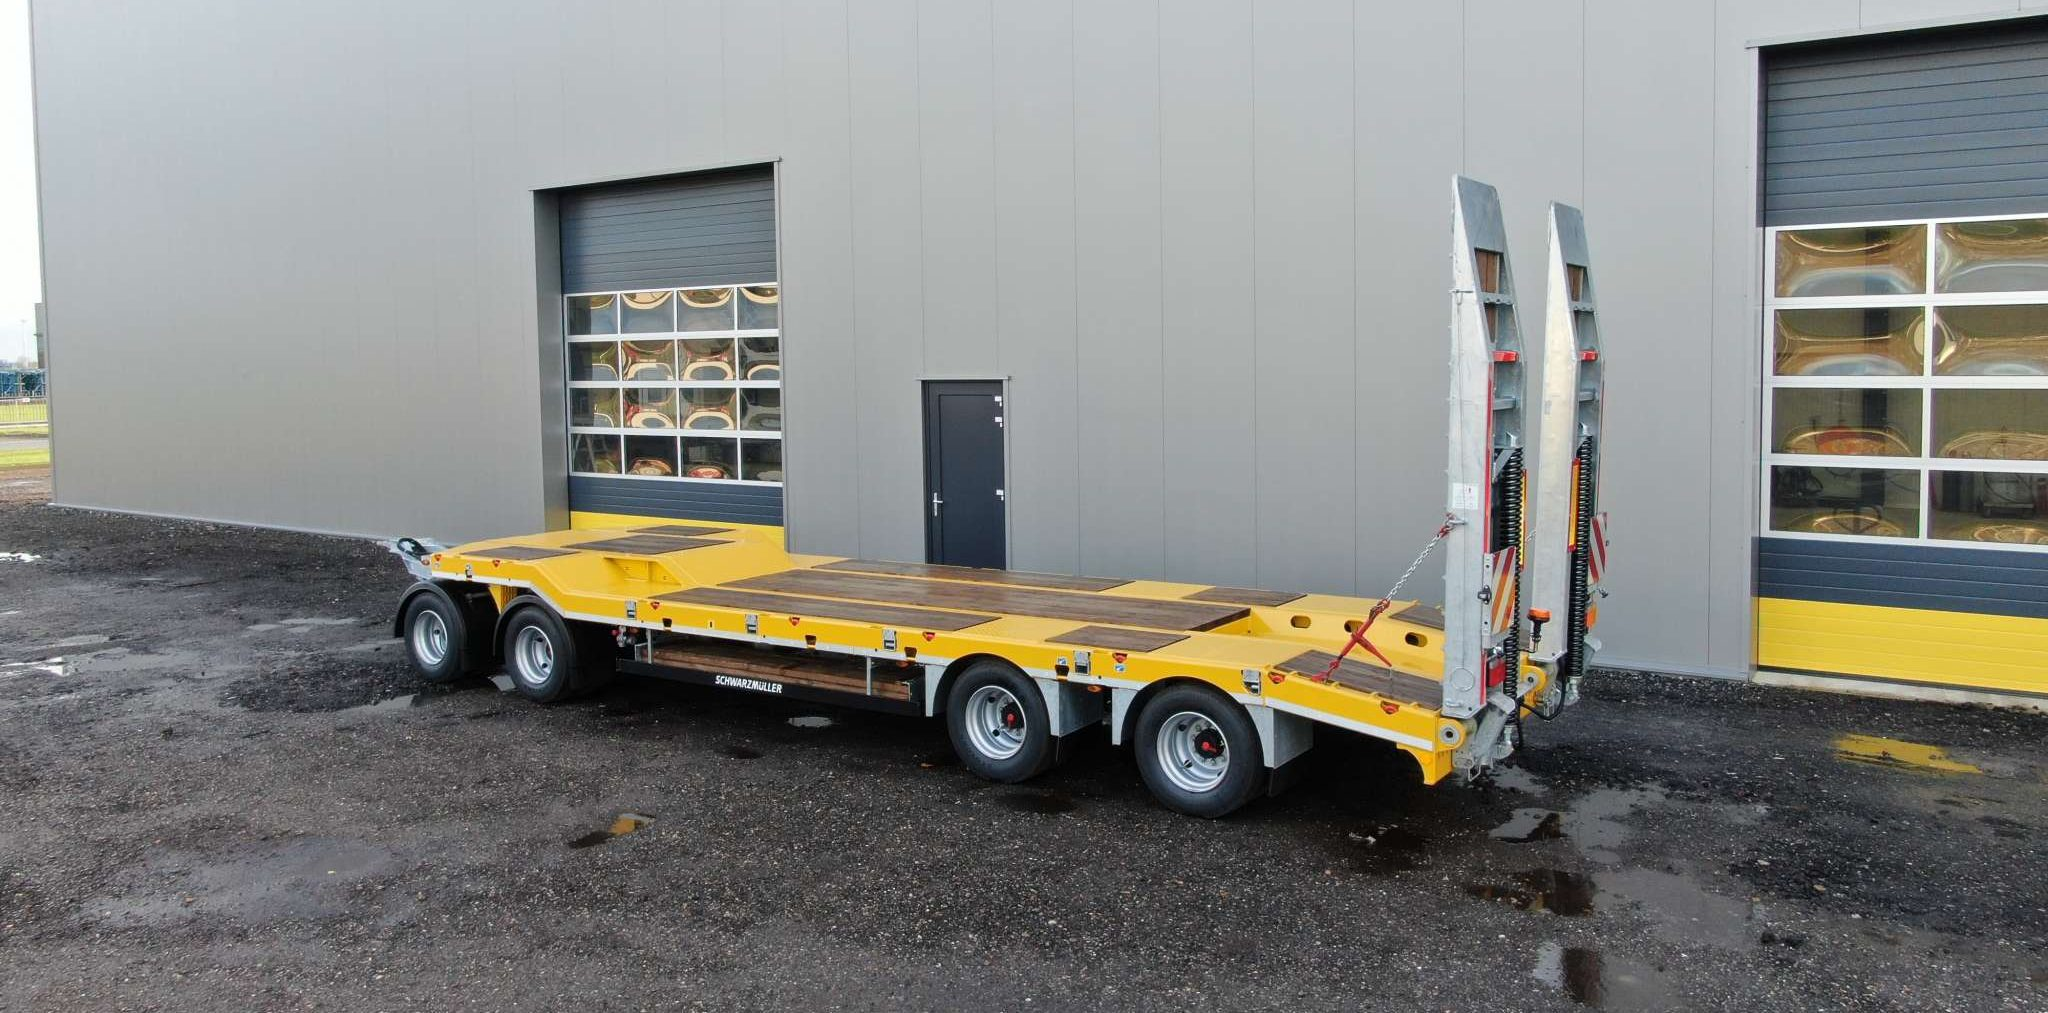 4-axle low loader trailer with offset platform